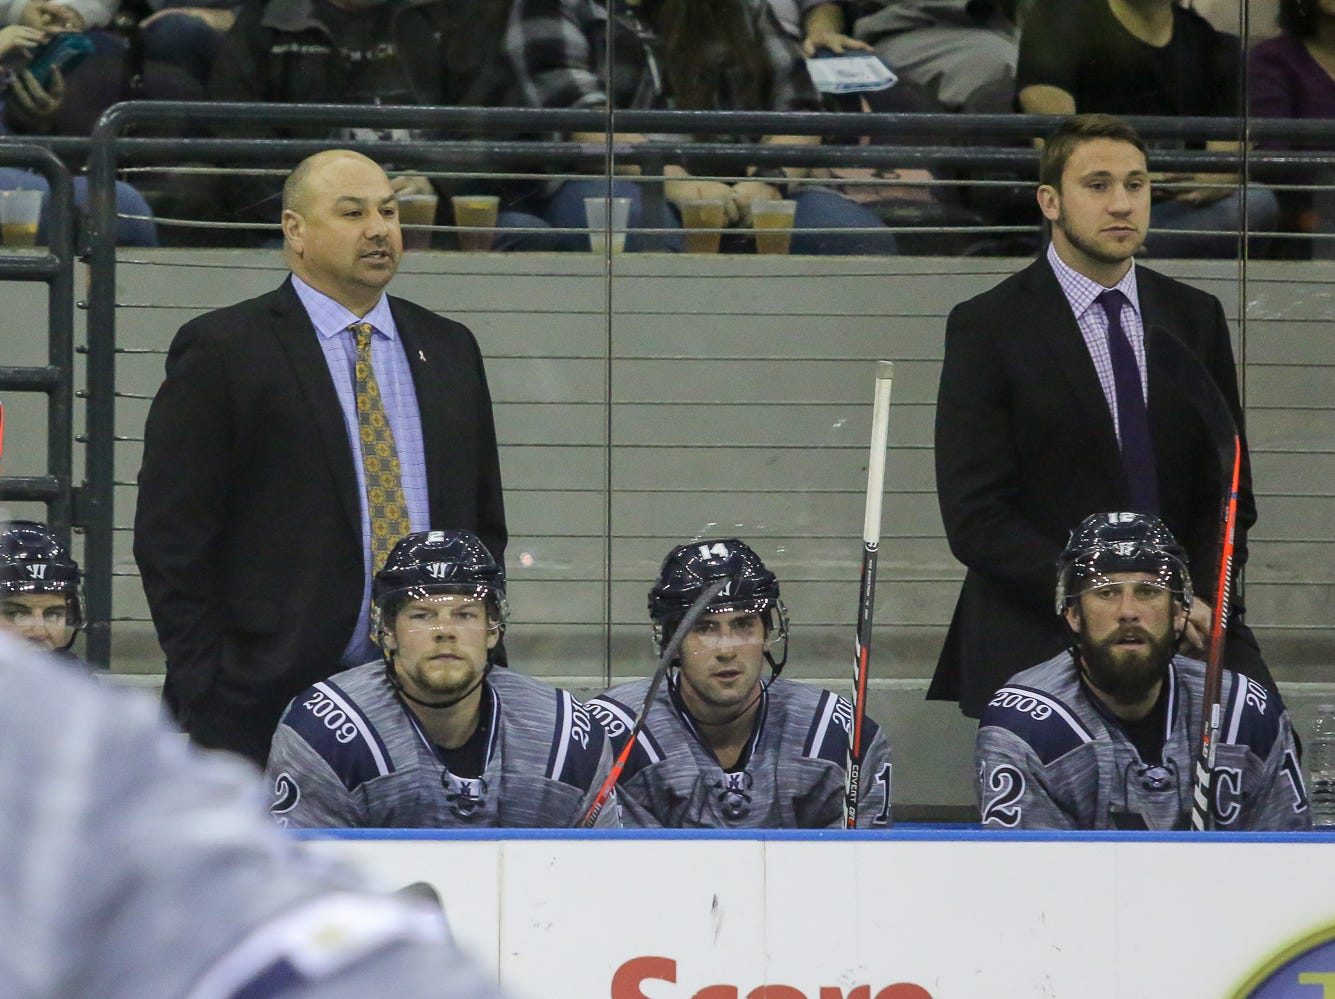 Pensacola head coach Rod Aldoff, left, and assistant coach Jeremy Gates look on as their team takes on Macon in the last home game of the regular season at the Pensacola Bay Center on Saturday, March 23, 2019. With over 4,300 people in attendance for Pensacola's 3-1 victory, the Ice Flyers mark six straight years of over 100,000 people at their home games each season. The team has won their last five games in a row and will finish out their last five games on the road before entering the playoffs in a couple of weeks.